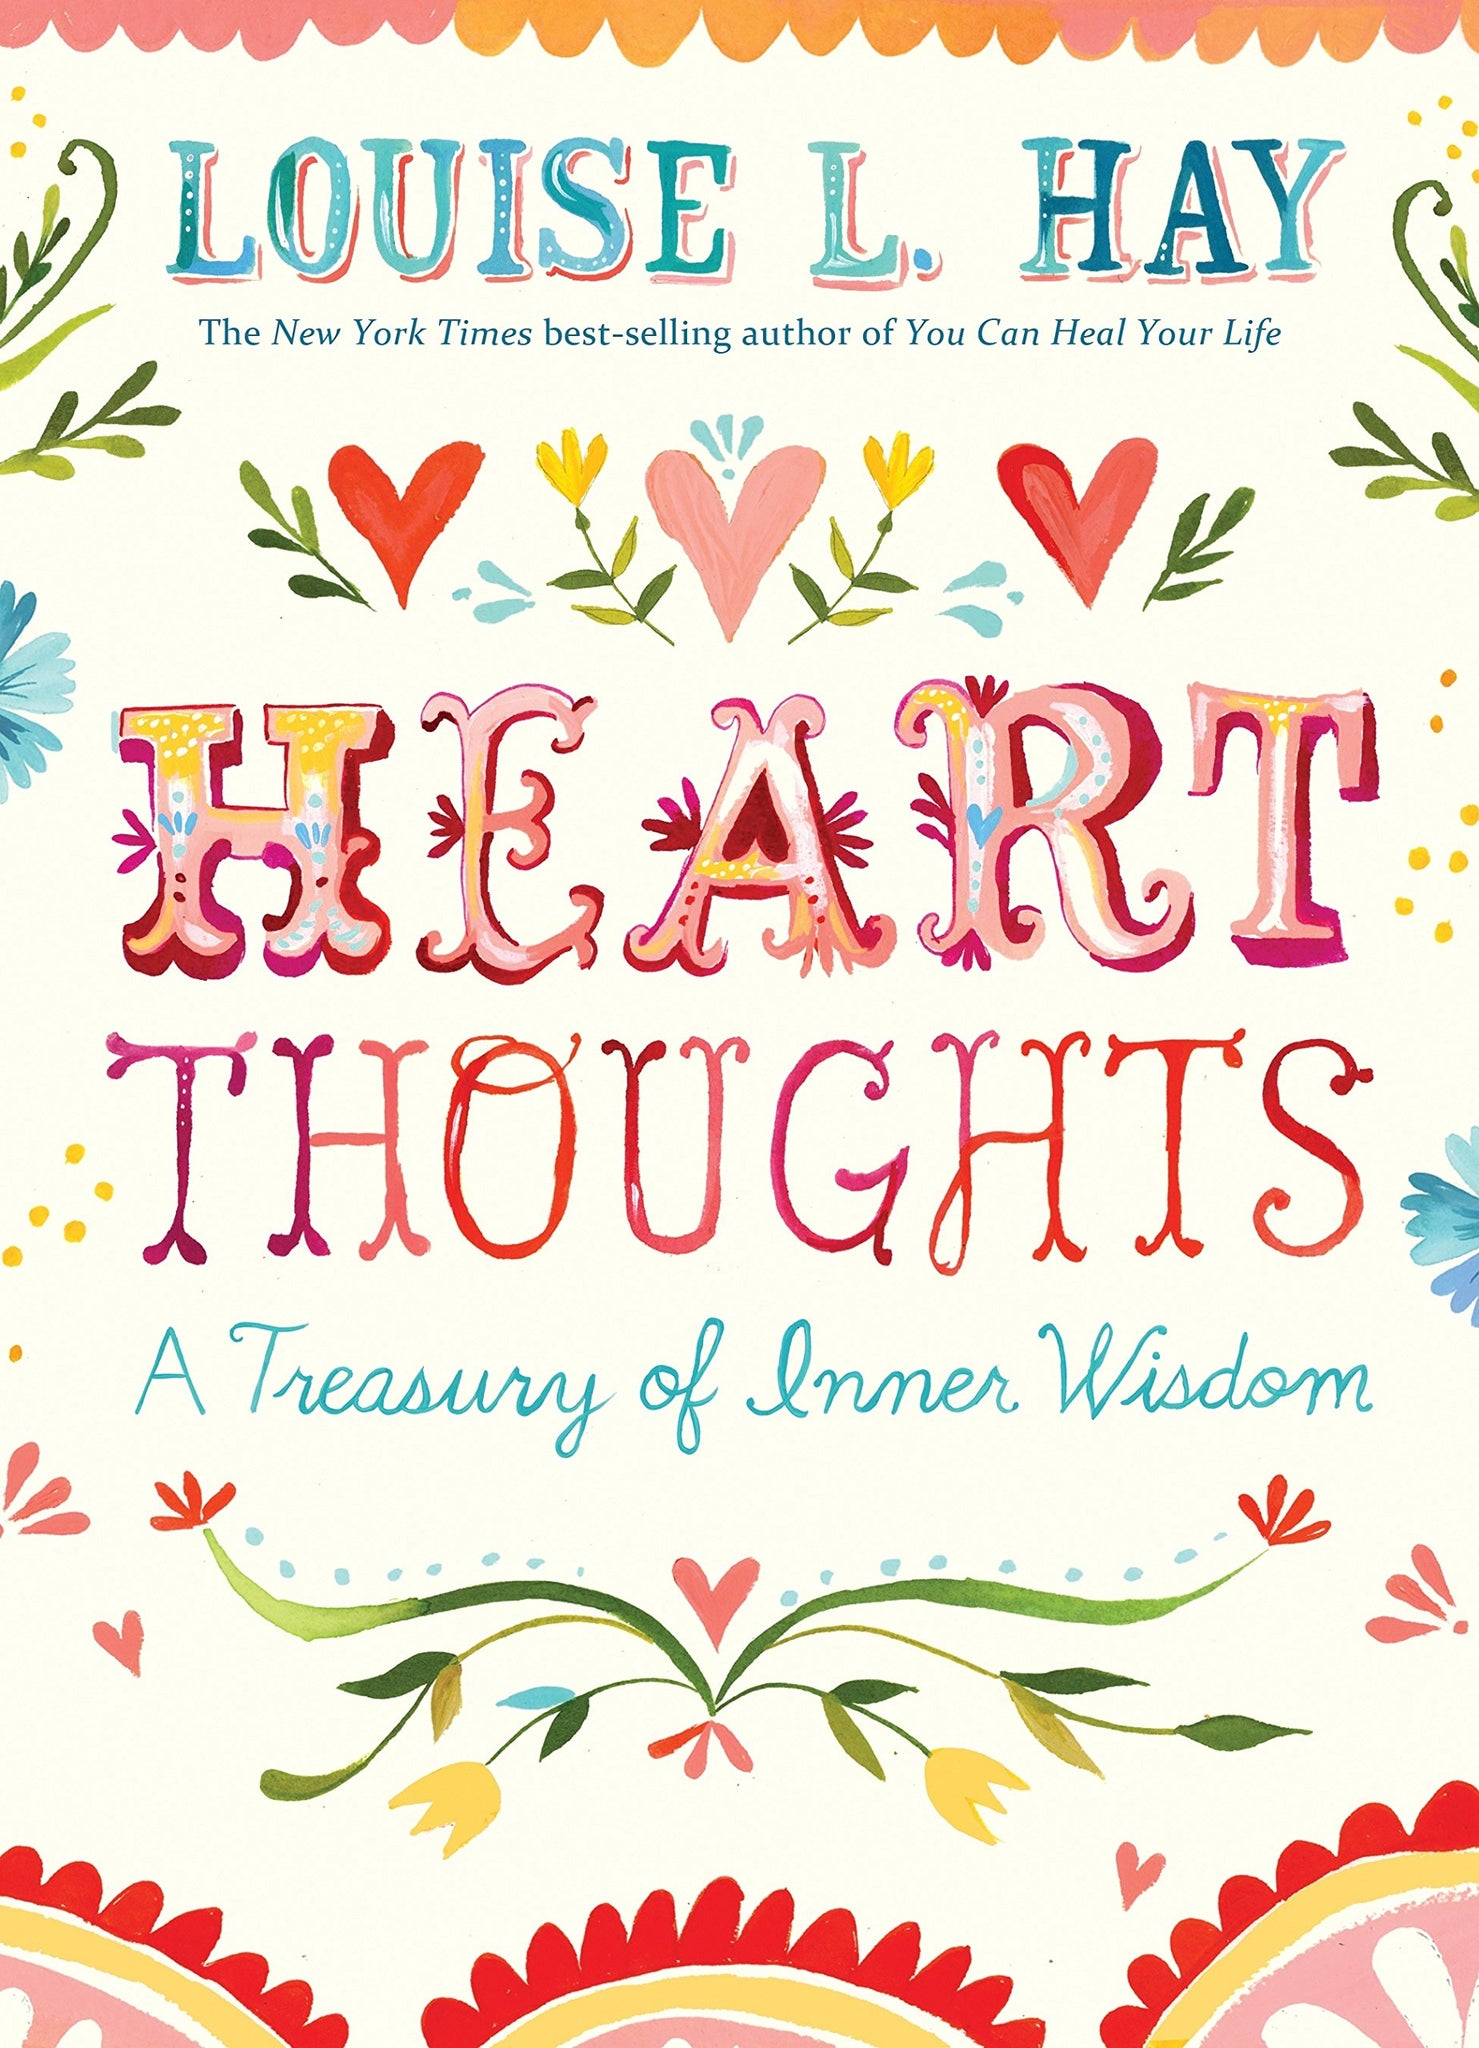 Heart Thoughts by Louise L Hay